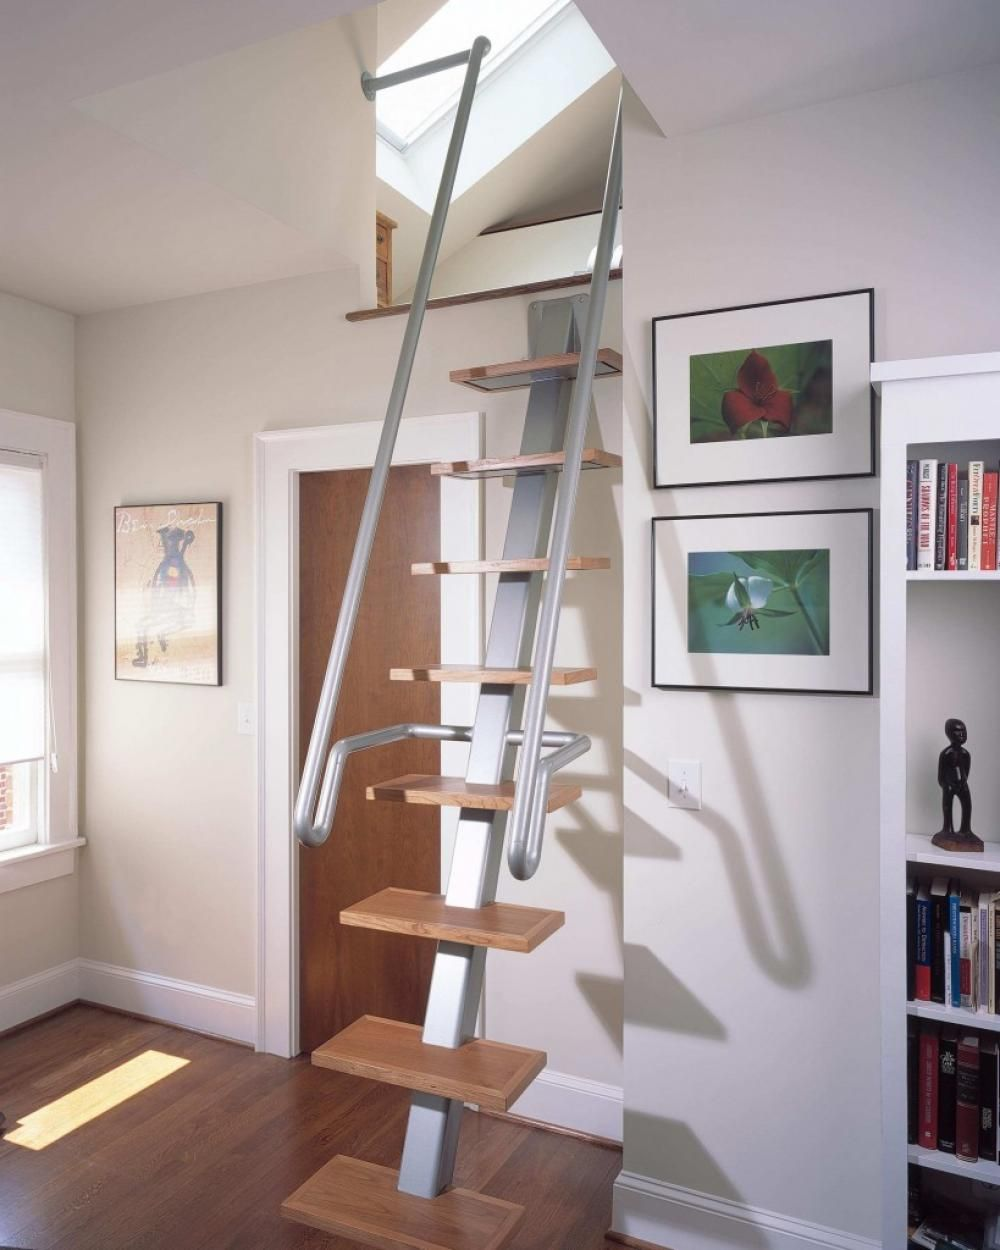 Unique And Creative Staircase Designs For Modern Homes Small | Stairs Design For Small Space | Steel | Space Saving | Limited Space | Unique | Residential